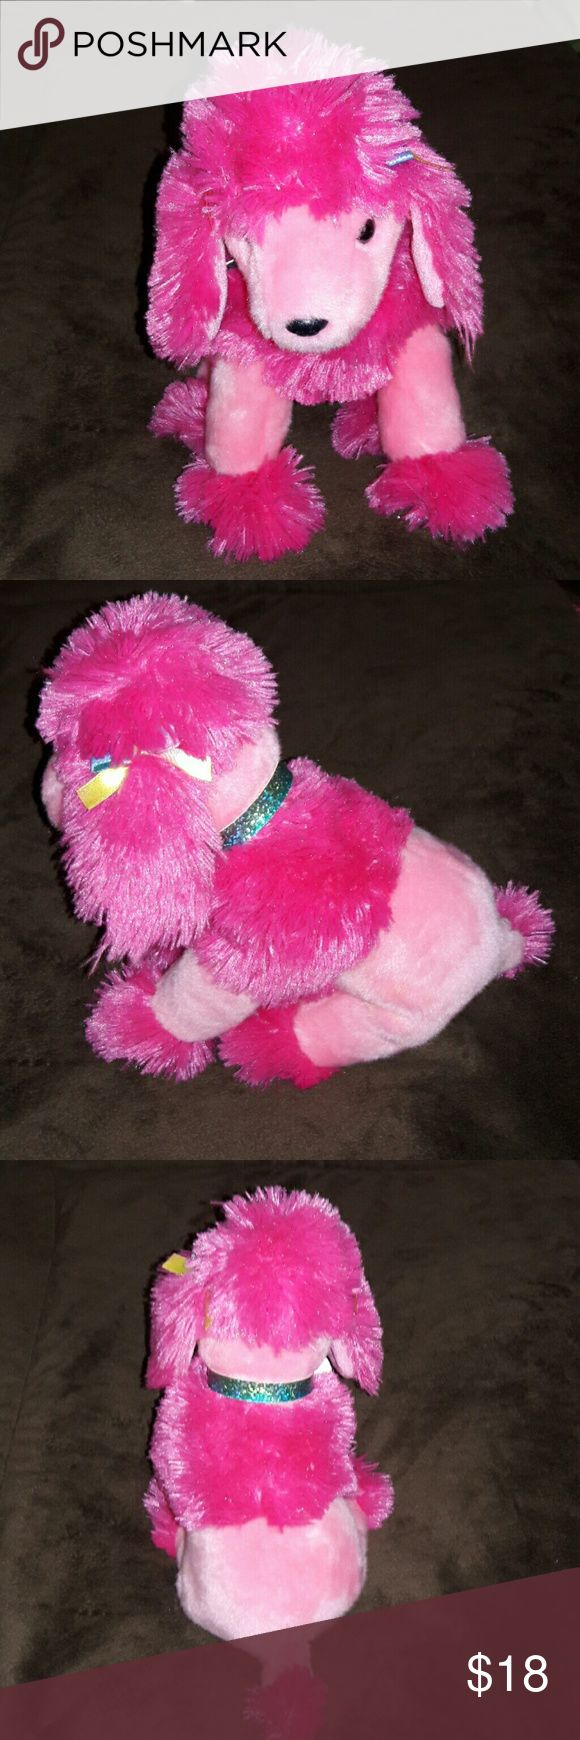 TY Beanie Buddy - PARFUM the Poodle (9.5 inch) From the Ty Beanie Buddies collection. Plush stuffed animal collectible toy. Mint with mint tags (with heart & tush tags). Approximate size: 9.5 inches. One of the Puppy Dog style TY Buddies.   TY BEANIE BUDDY  Other